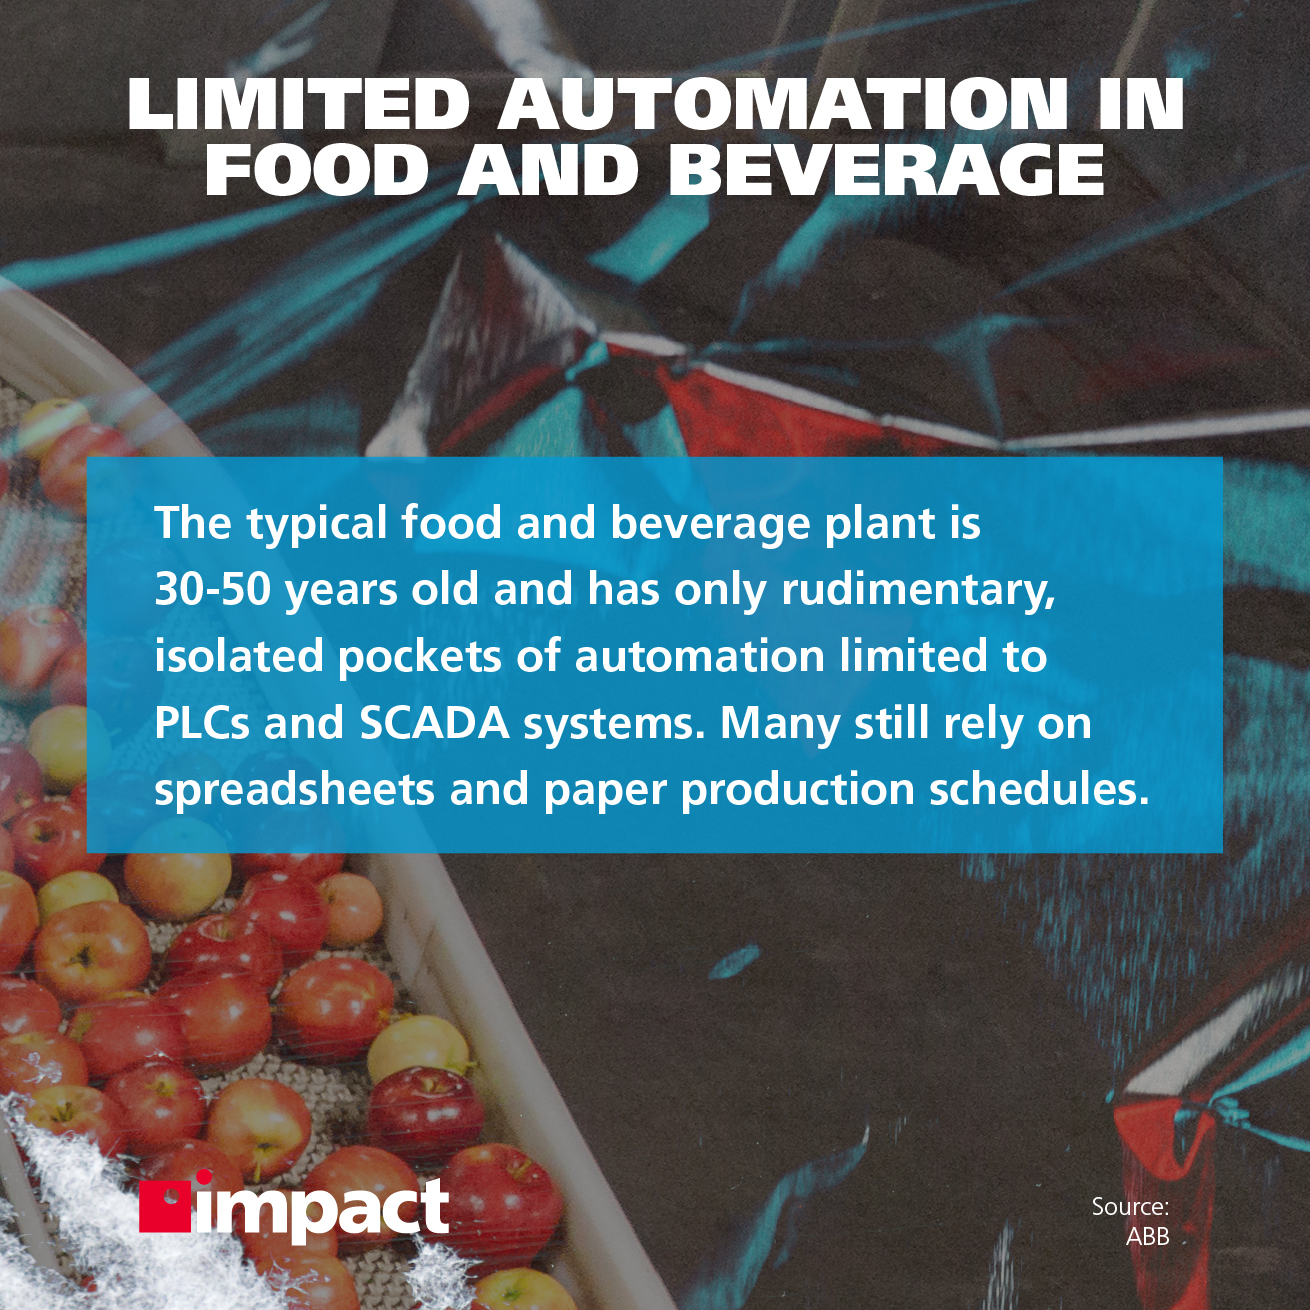 Limited automation in food and beverage industry